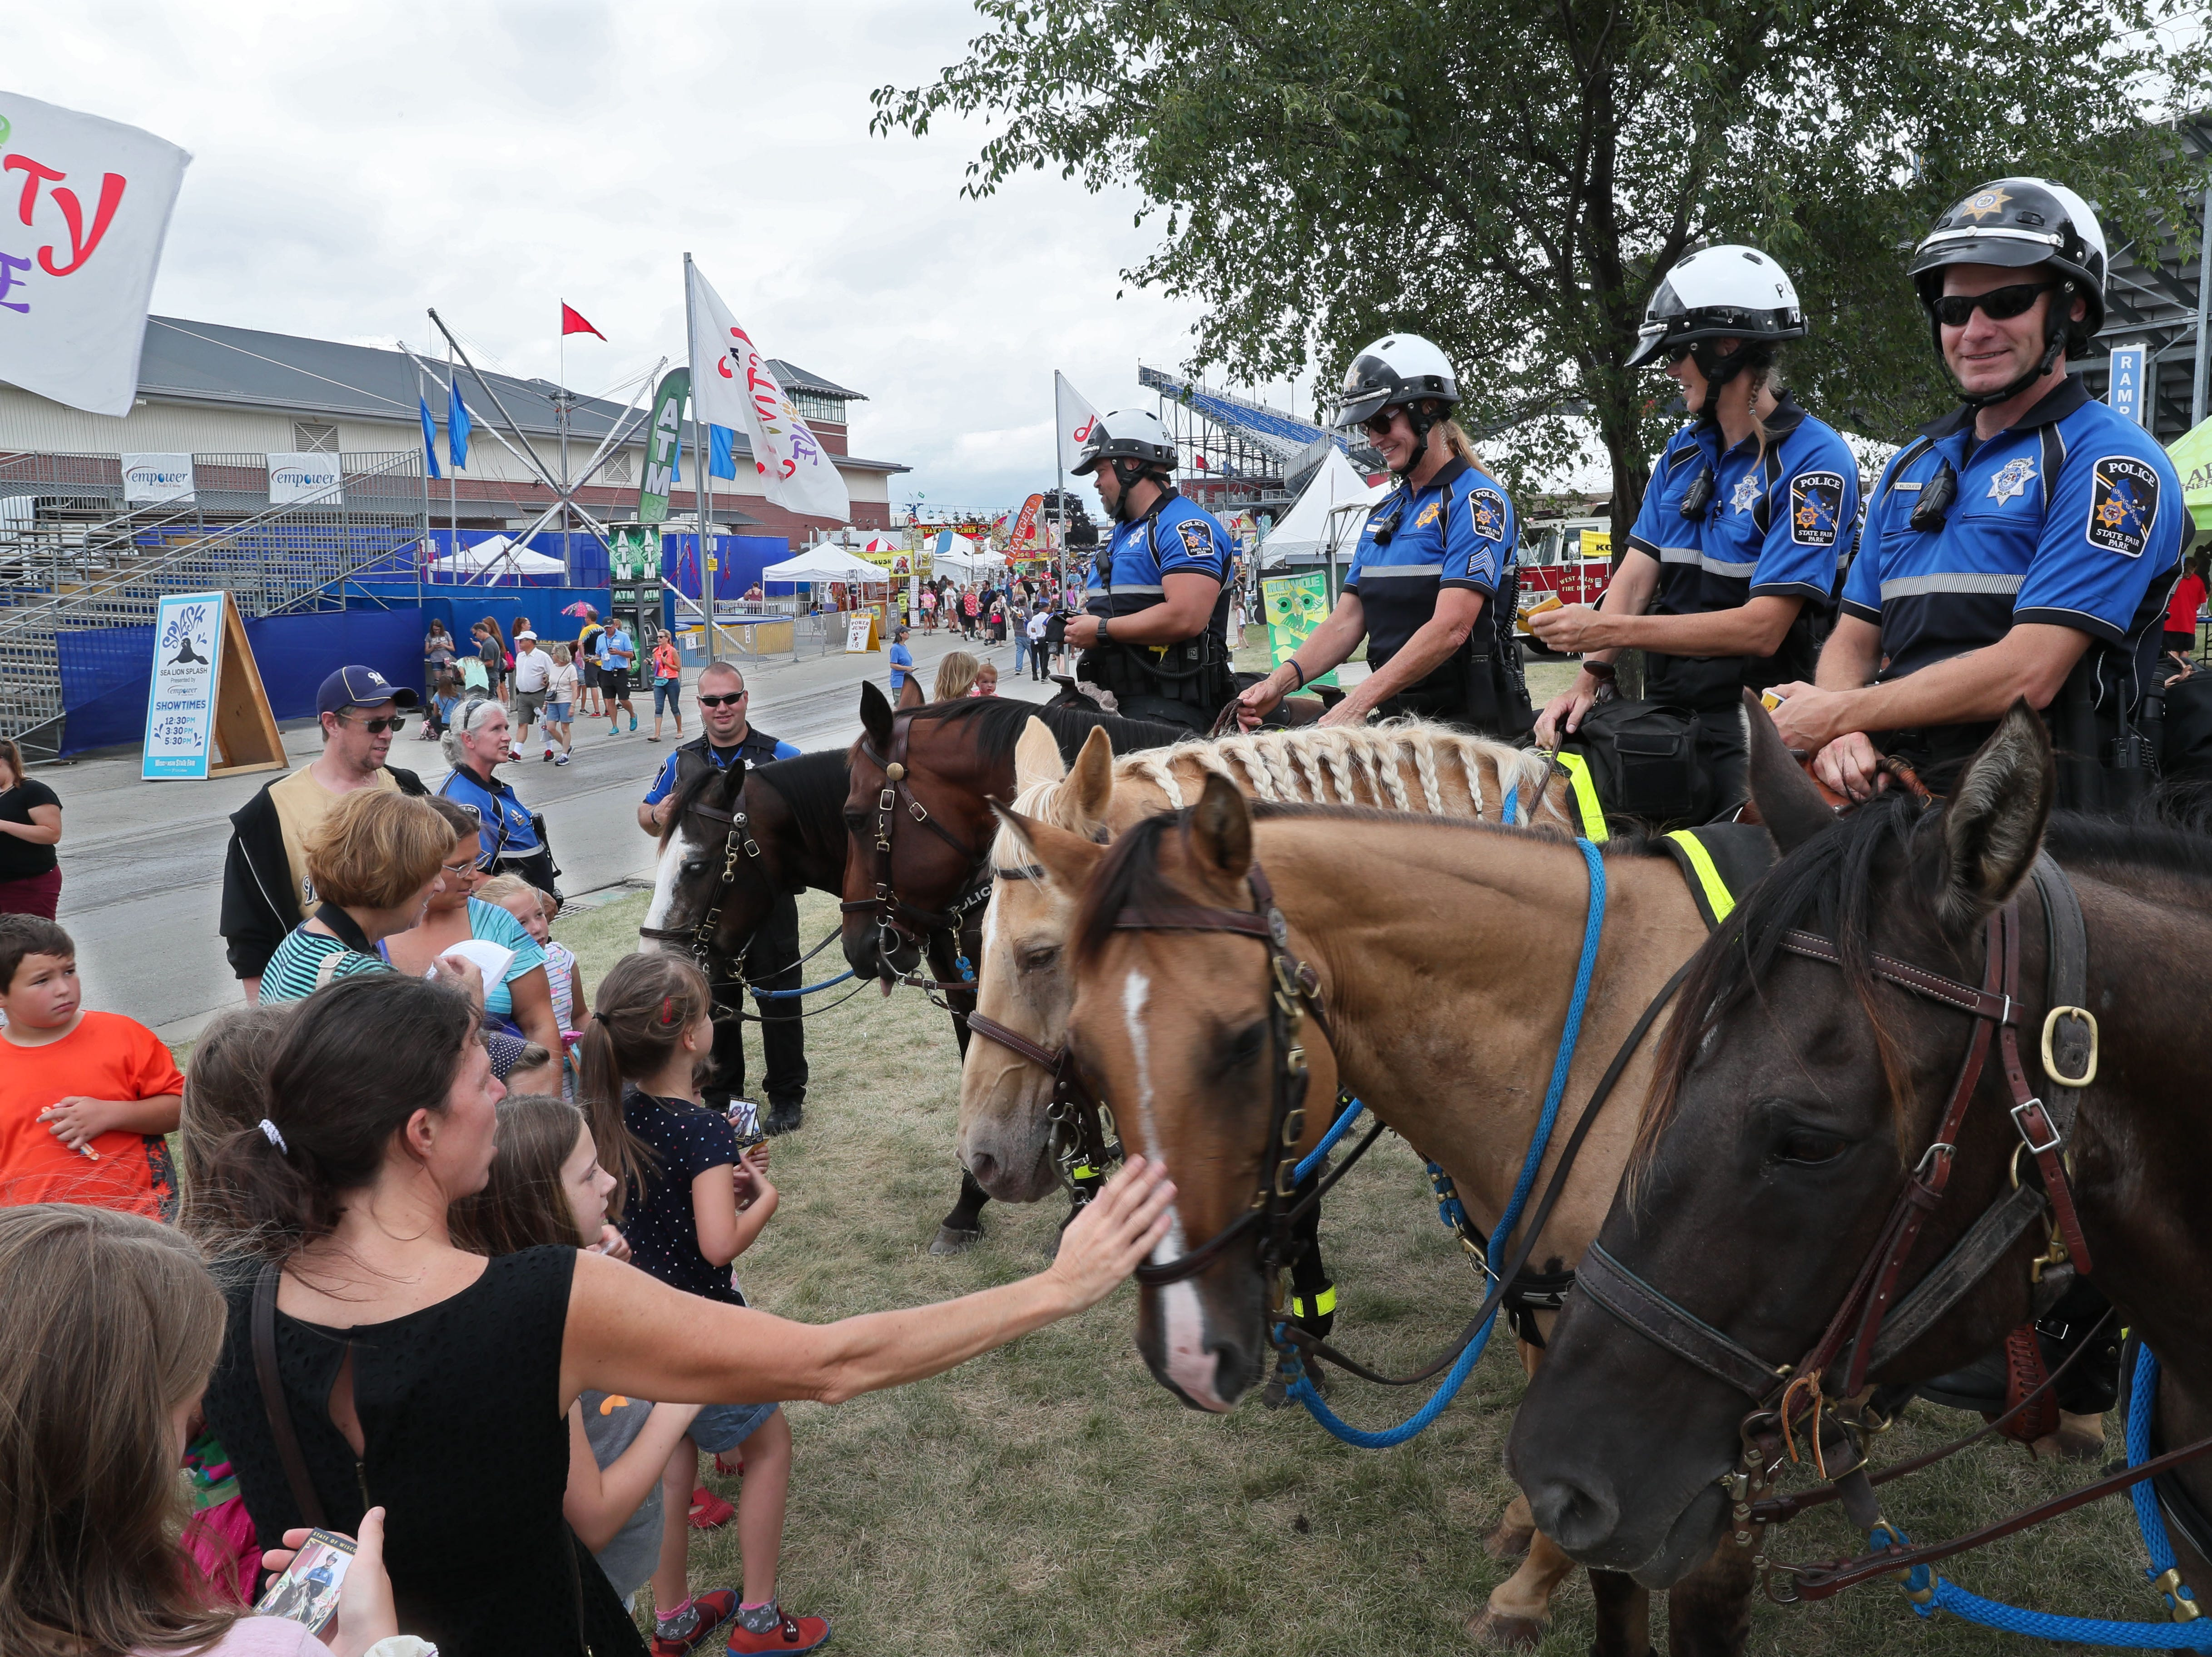 Wisconsin State Fair's mounted police patrol lead the fair's daily parade.  For 50 years the mounted police have both protected guests and served as ambassadors.